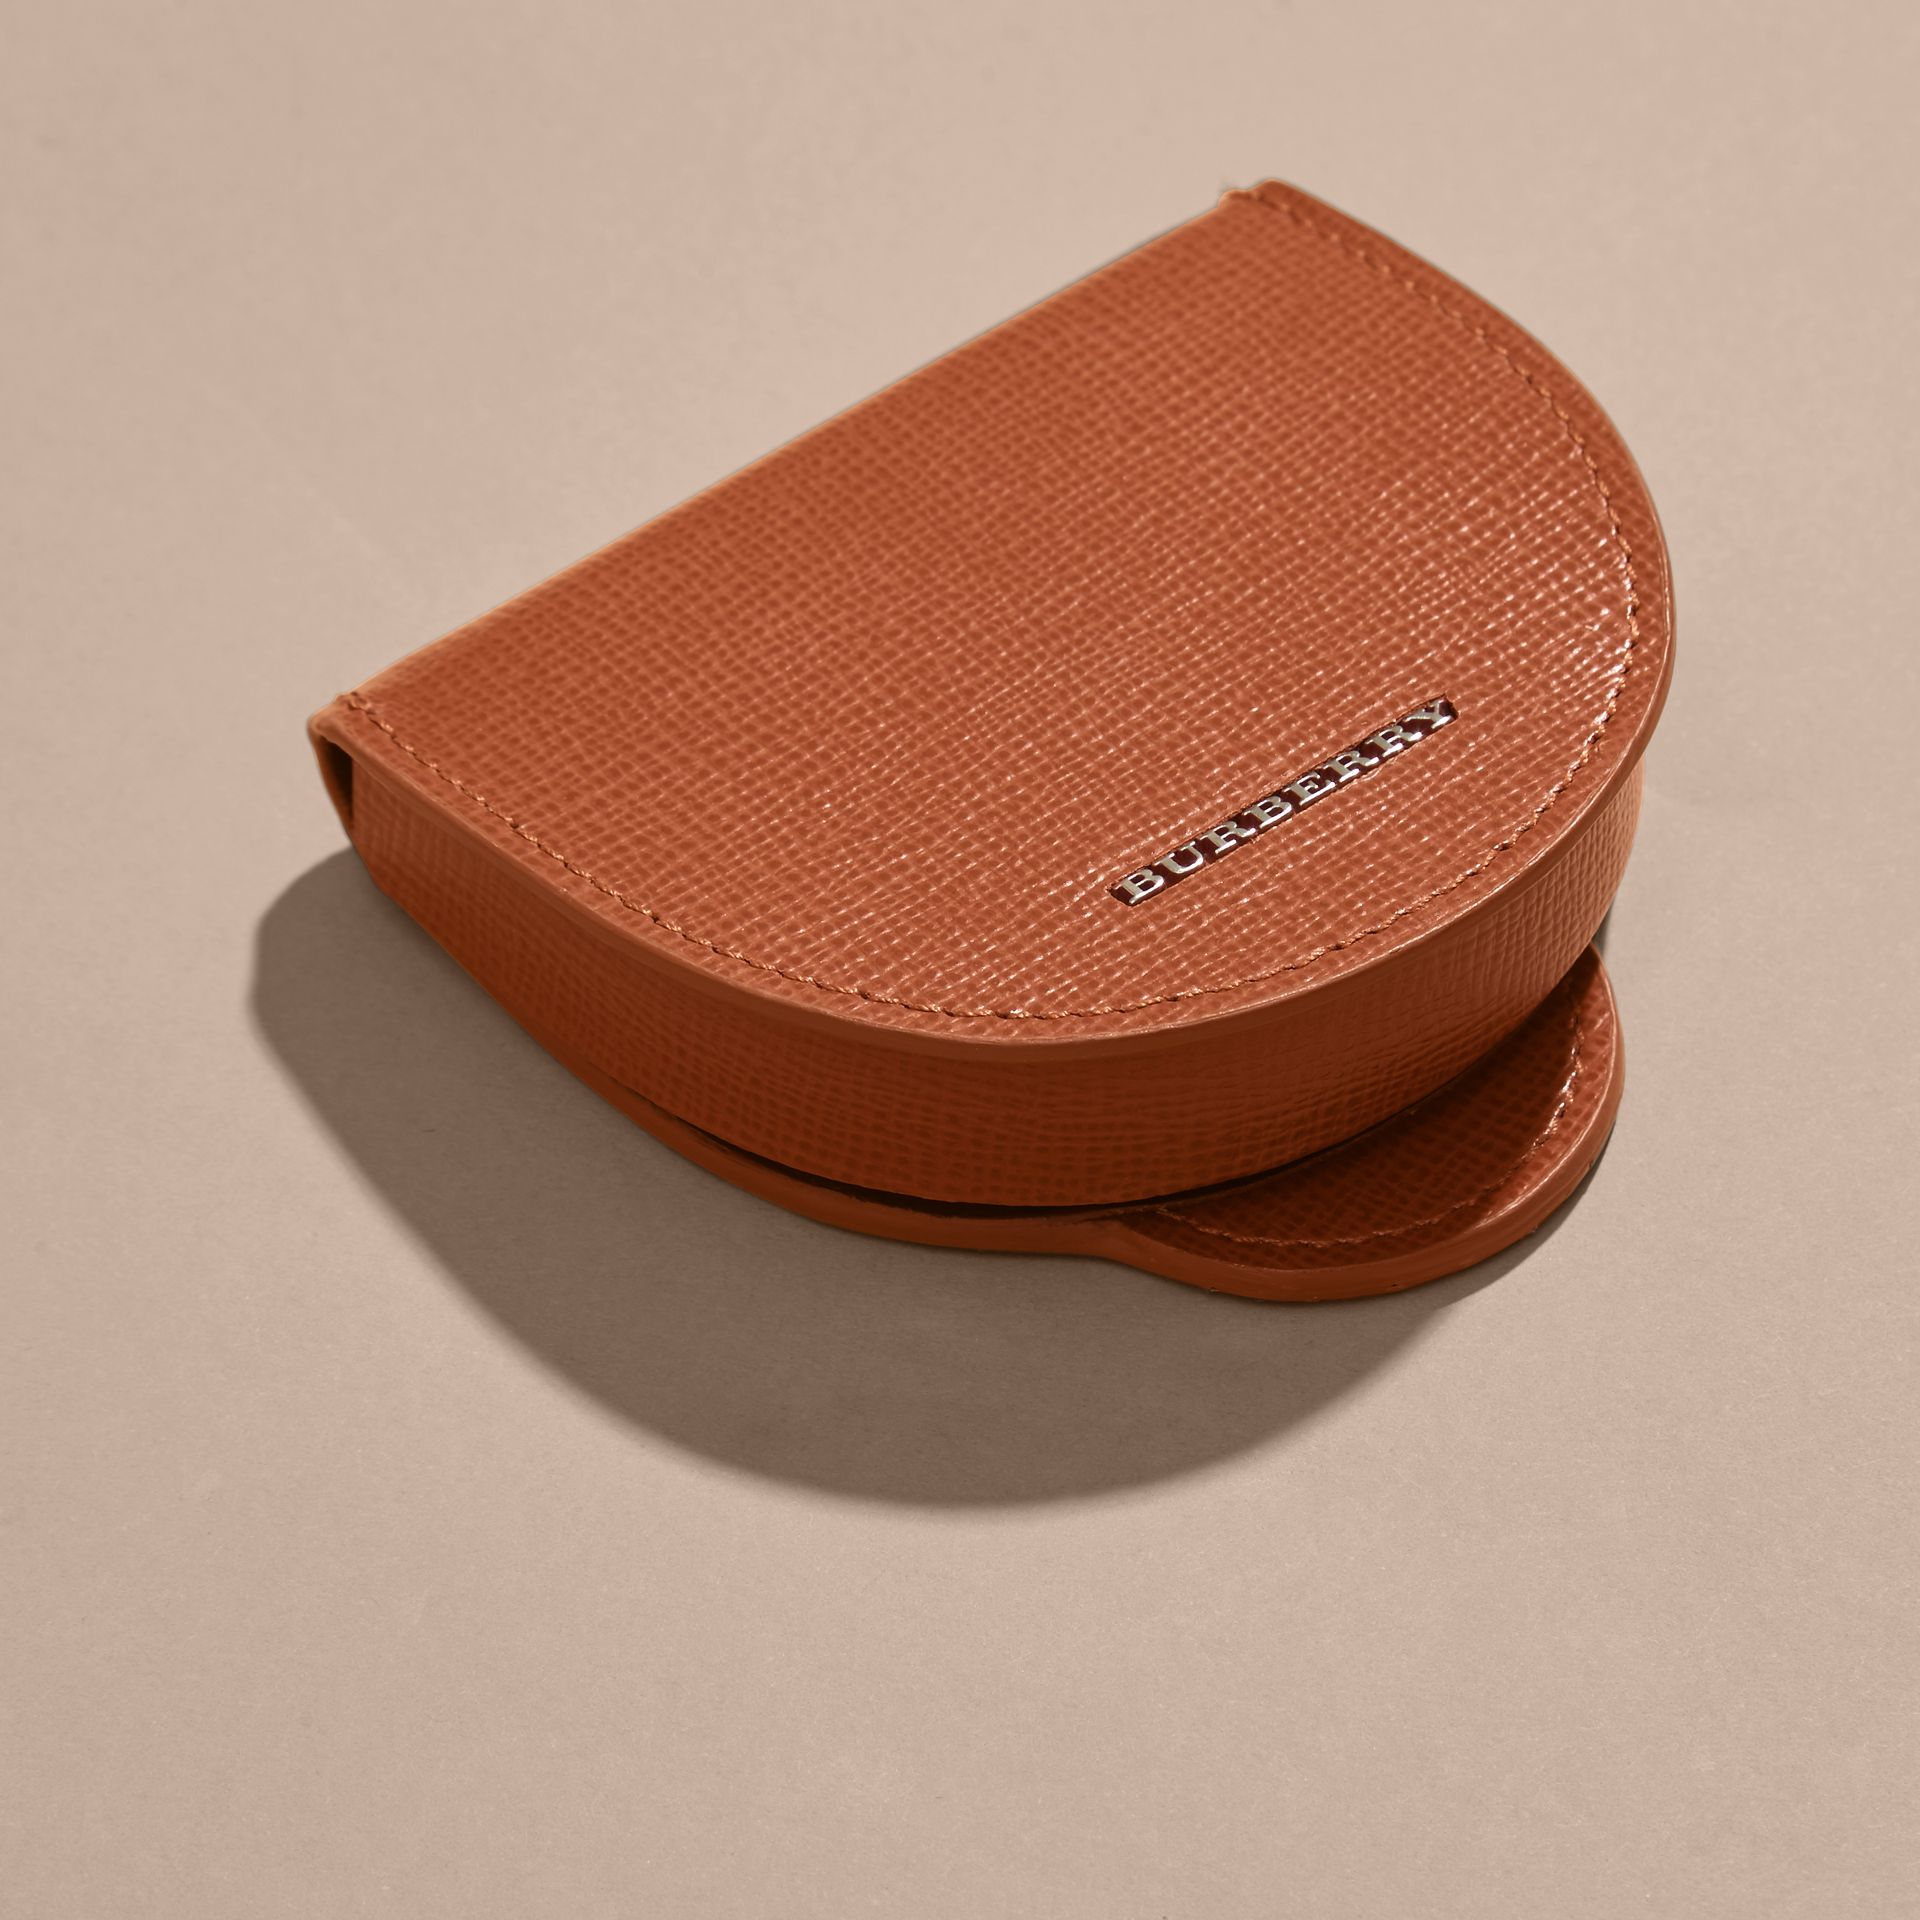 Burnt sienna London Leather Coin Case Burnt Sienna - gallery image 3